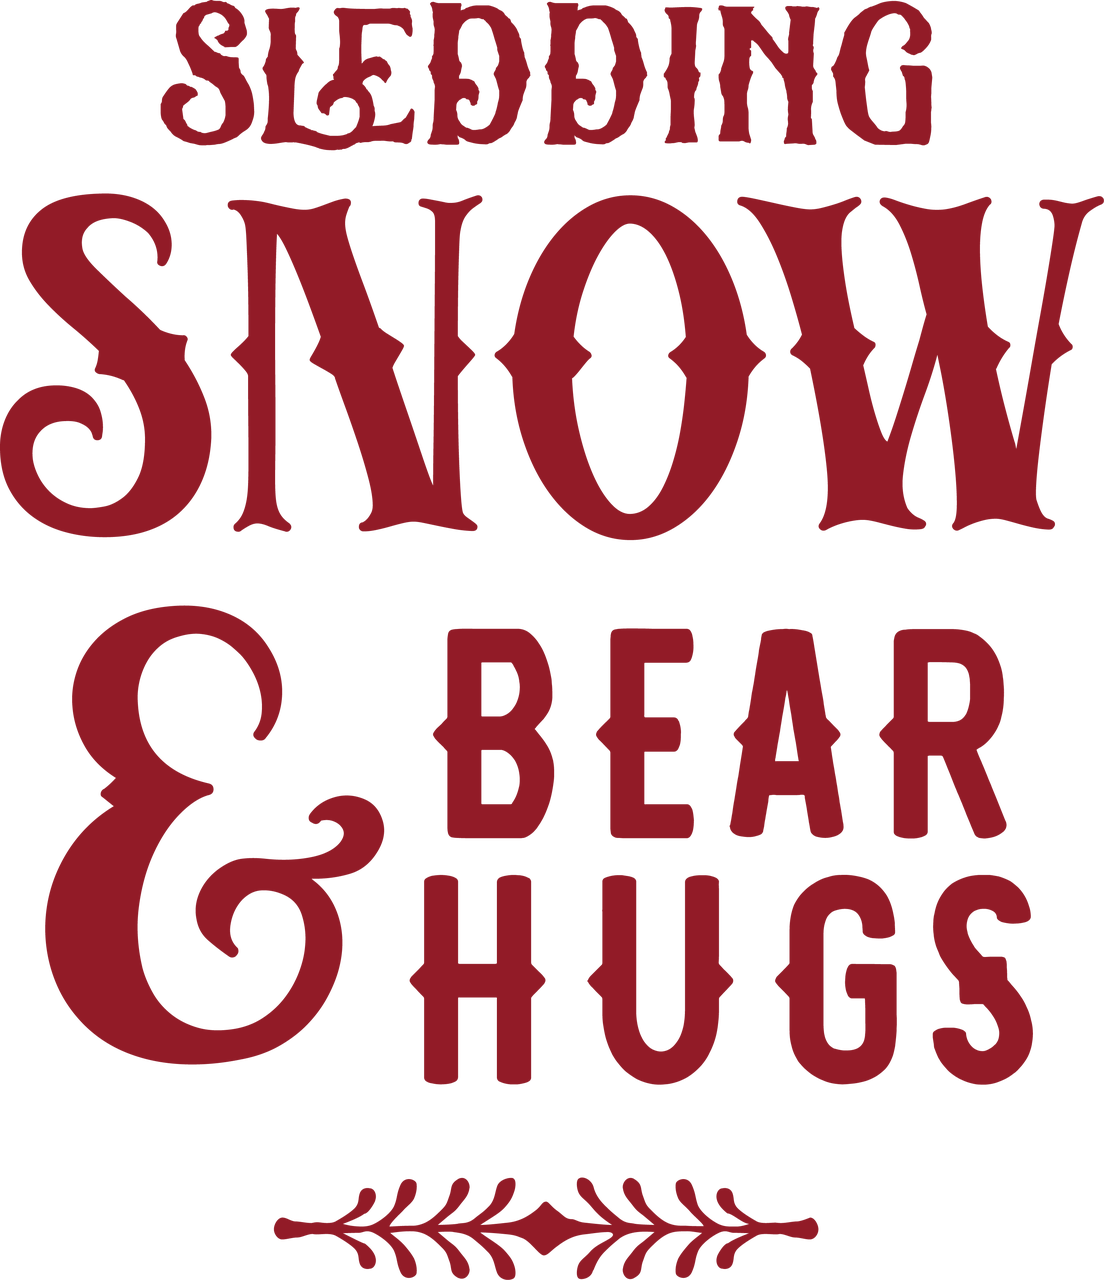 Sledding Snow & Bear Hugs SVG Cut File